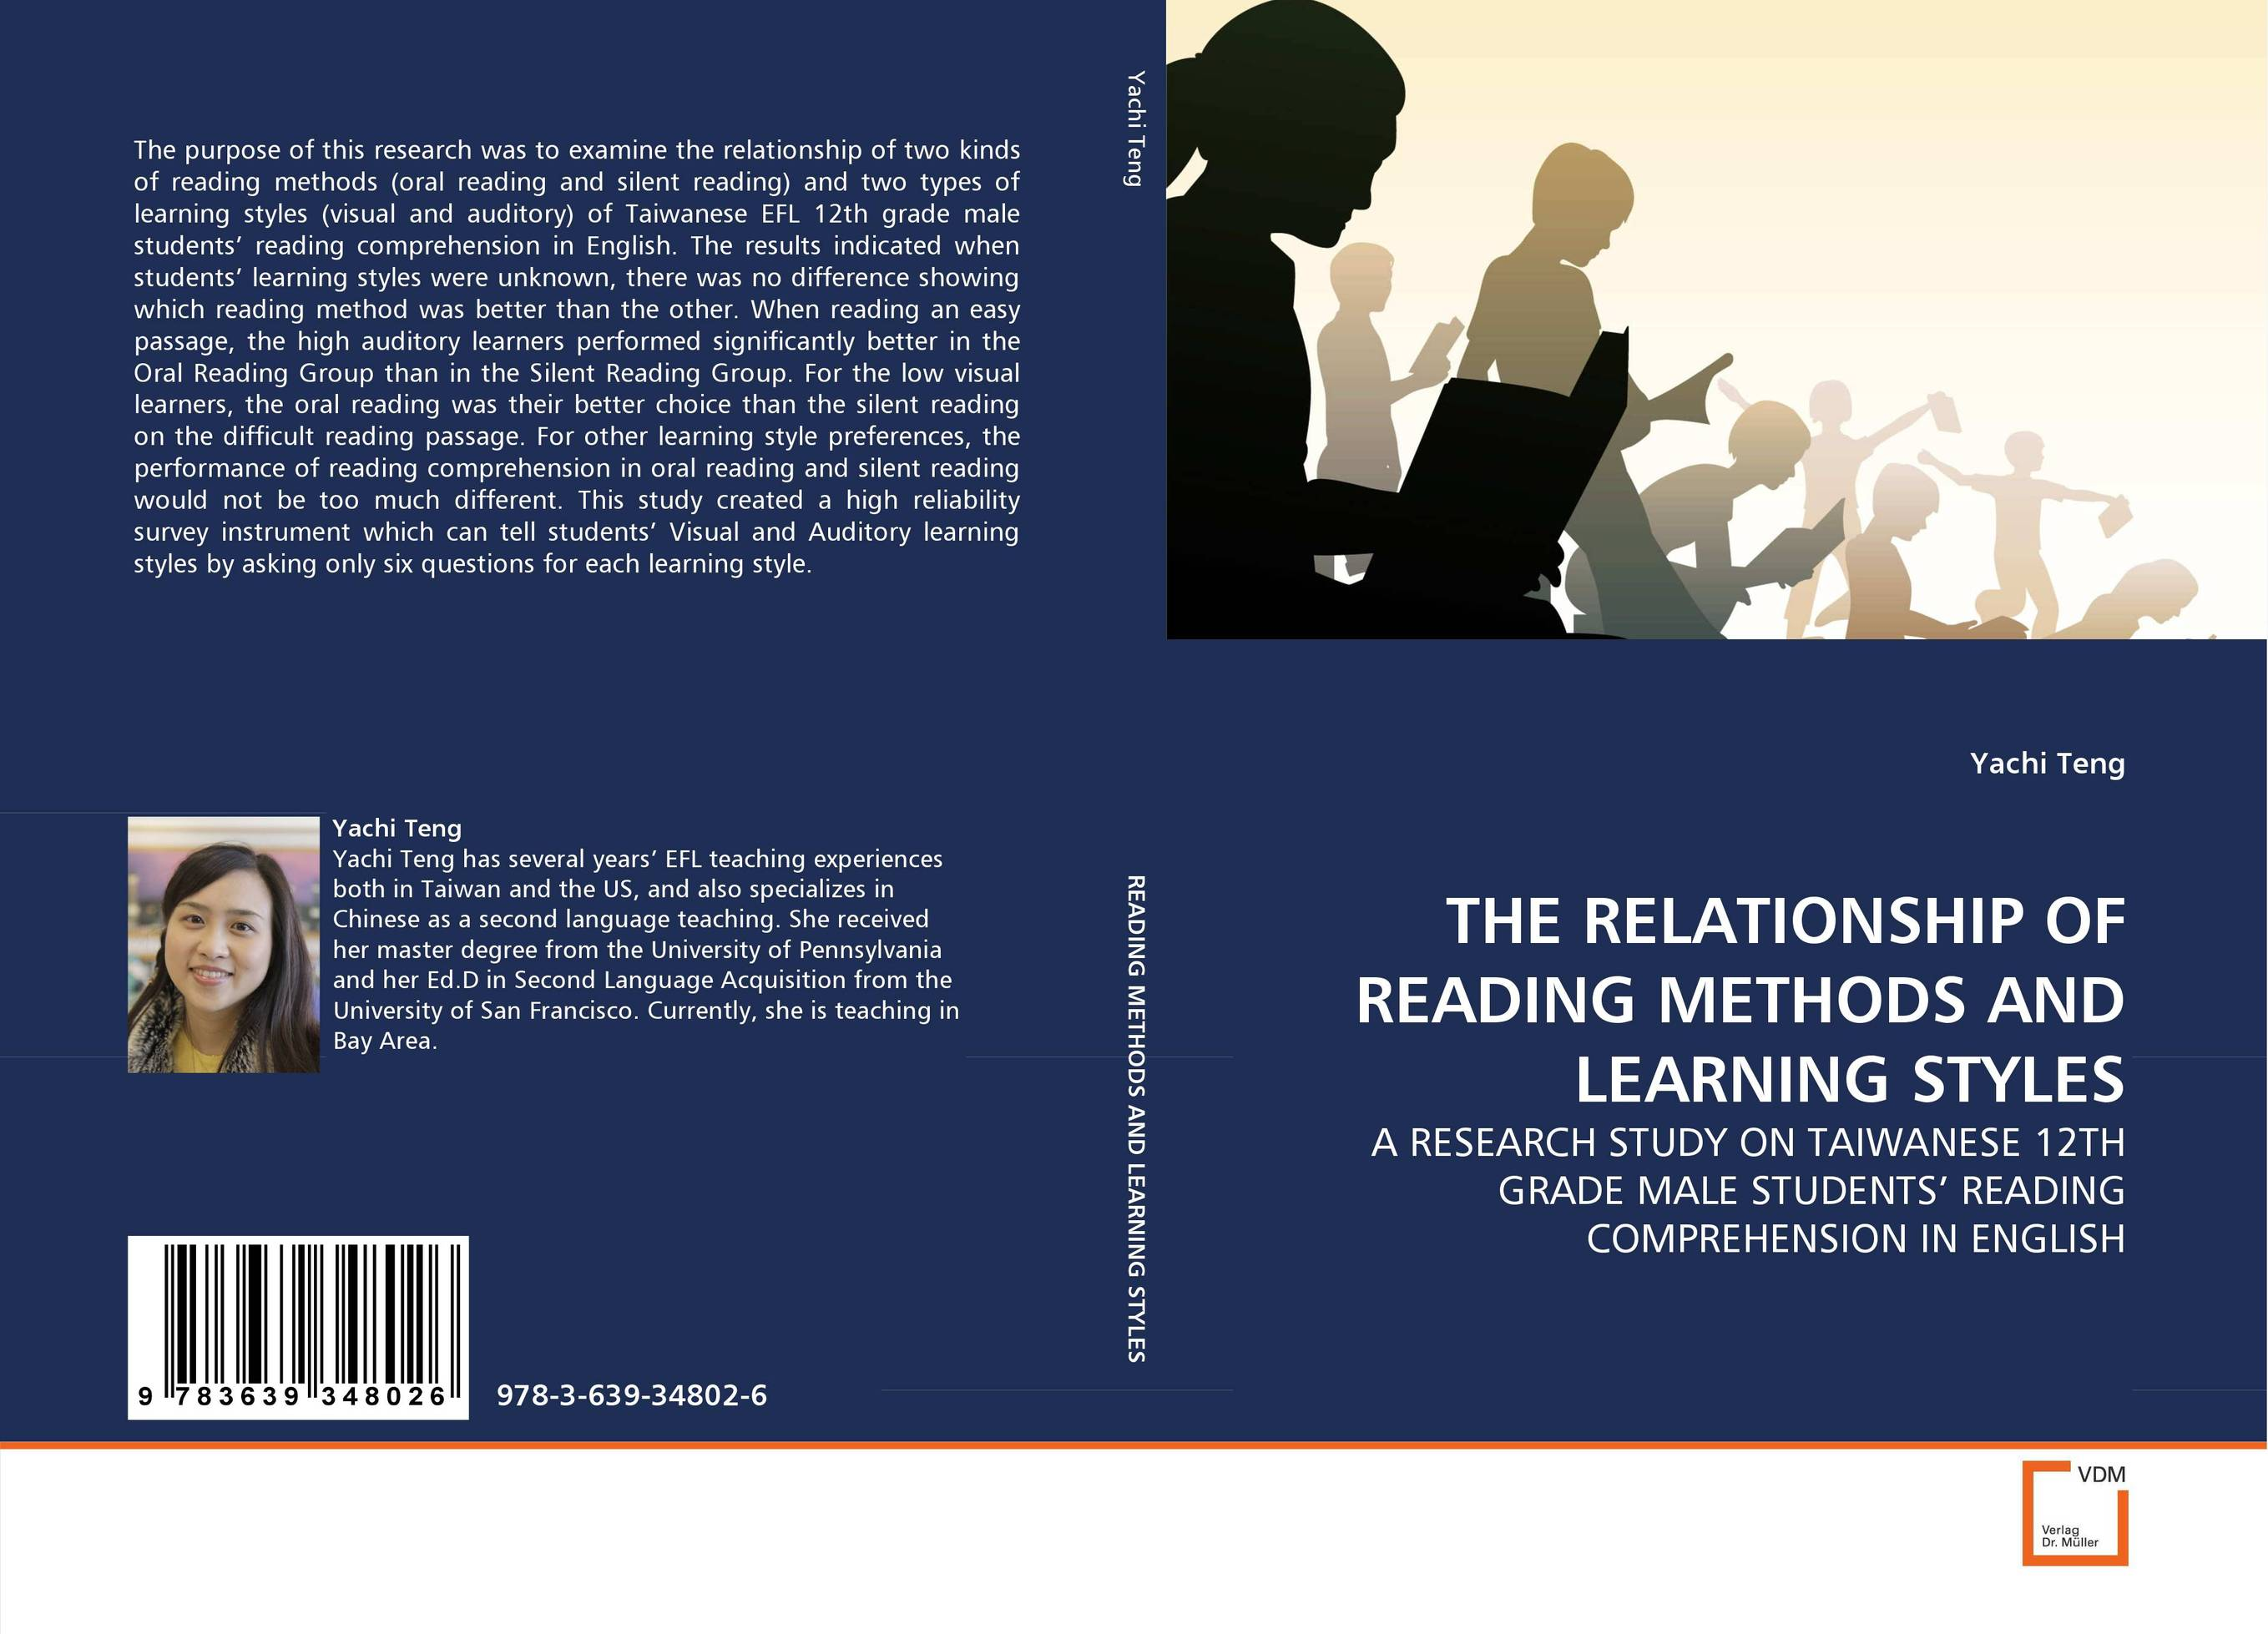 THE RELATIONSHIP OF READING METHODS AND LEARNING STYLES cap herman hedwear cap